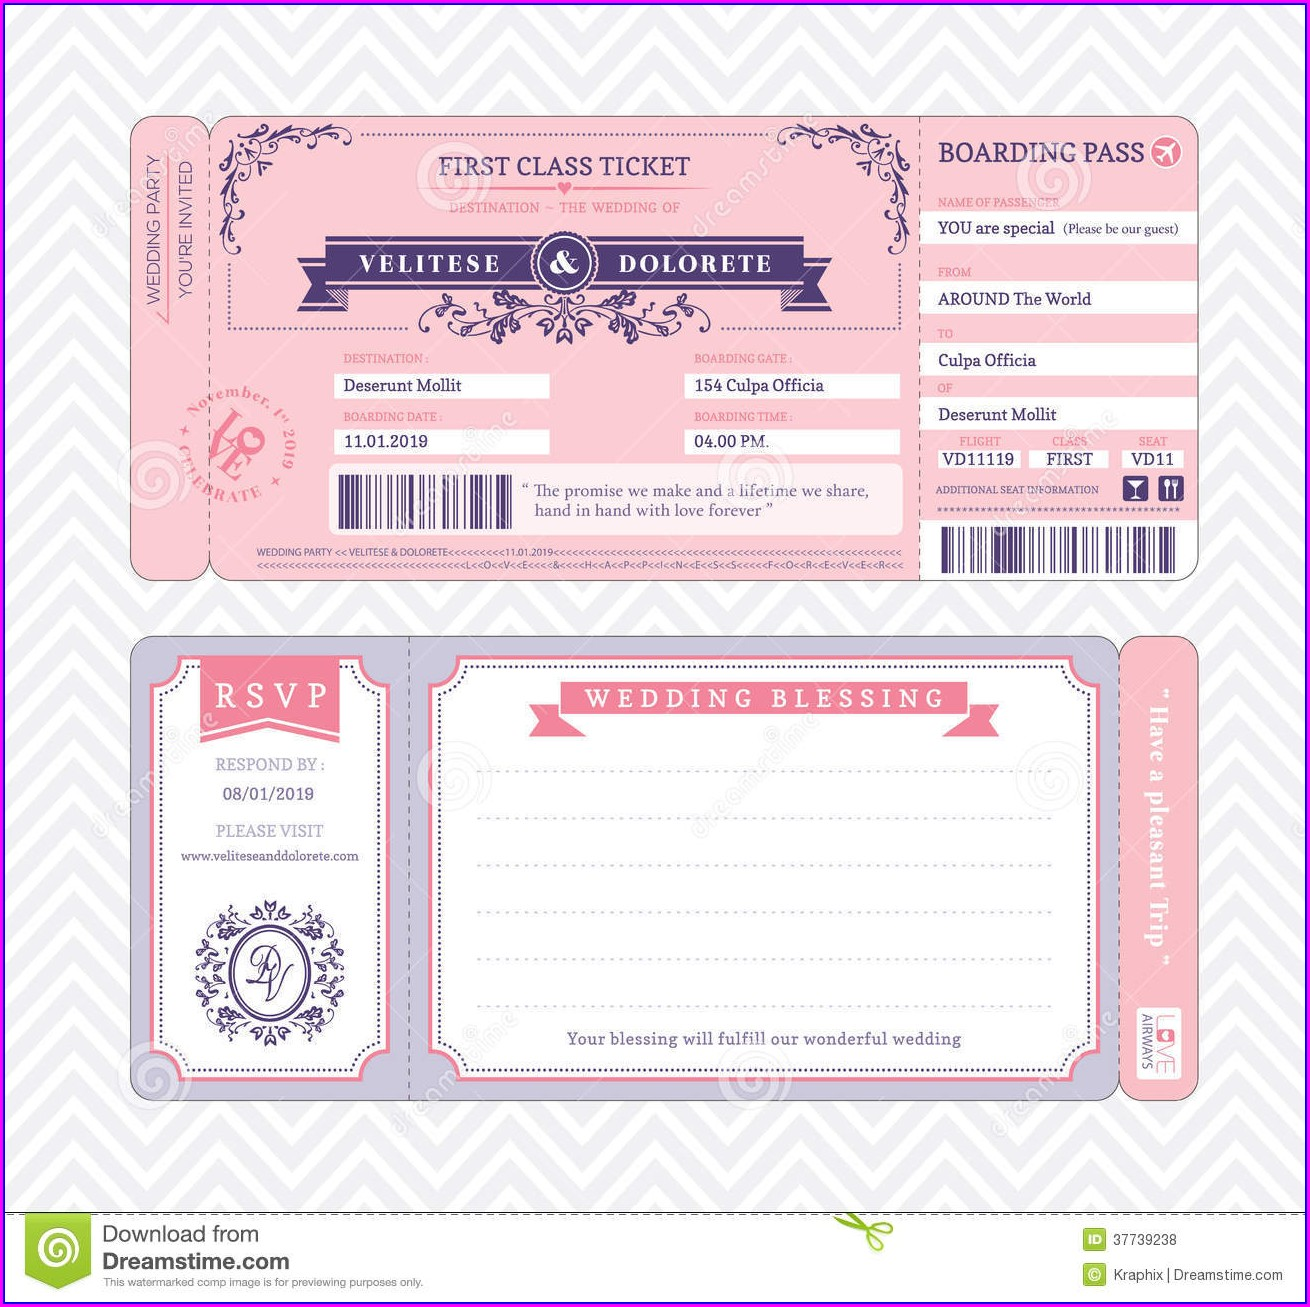 Template Ticket Style Invitation